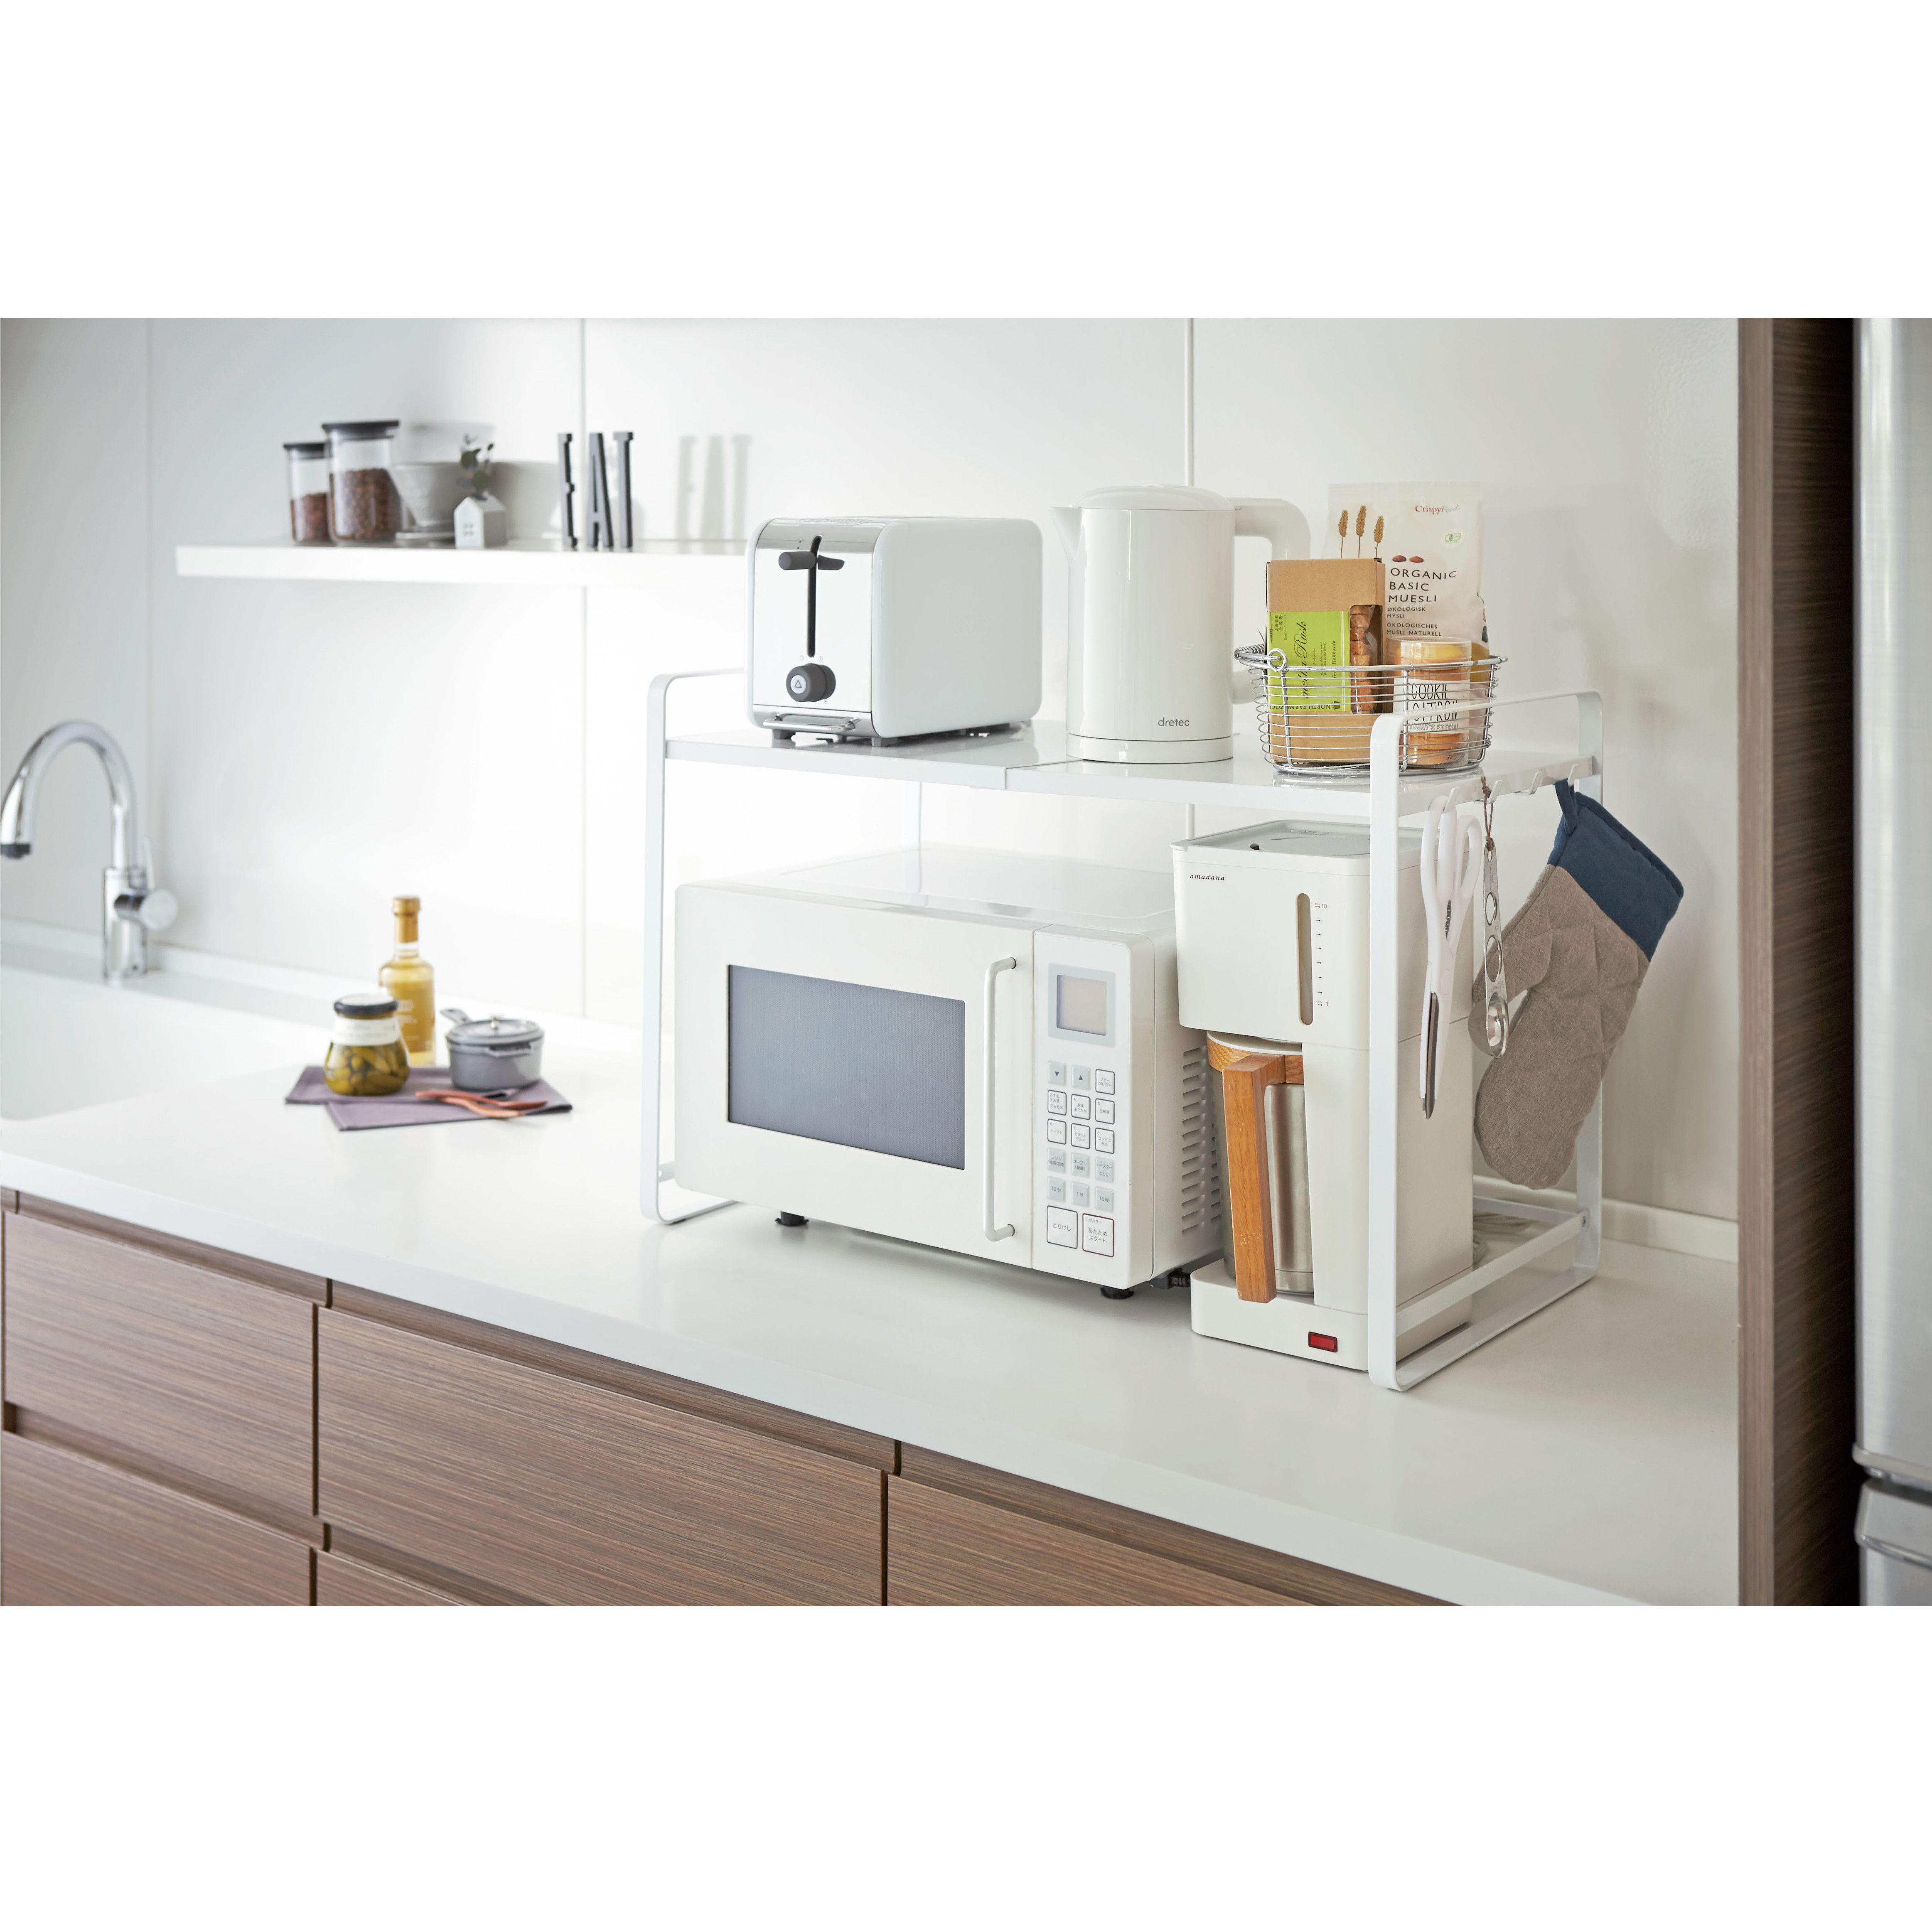 Expandable kitchen counter shelf tower